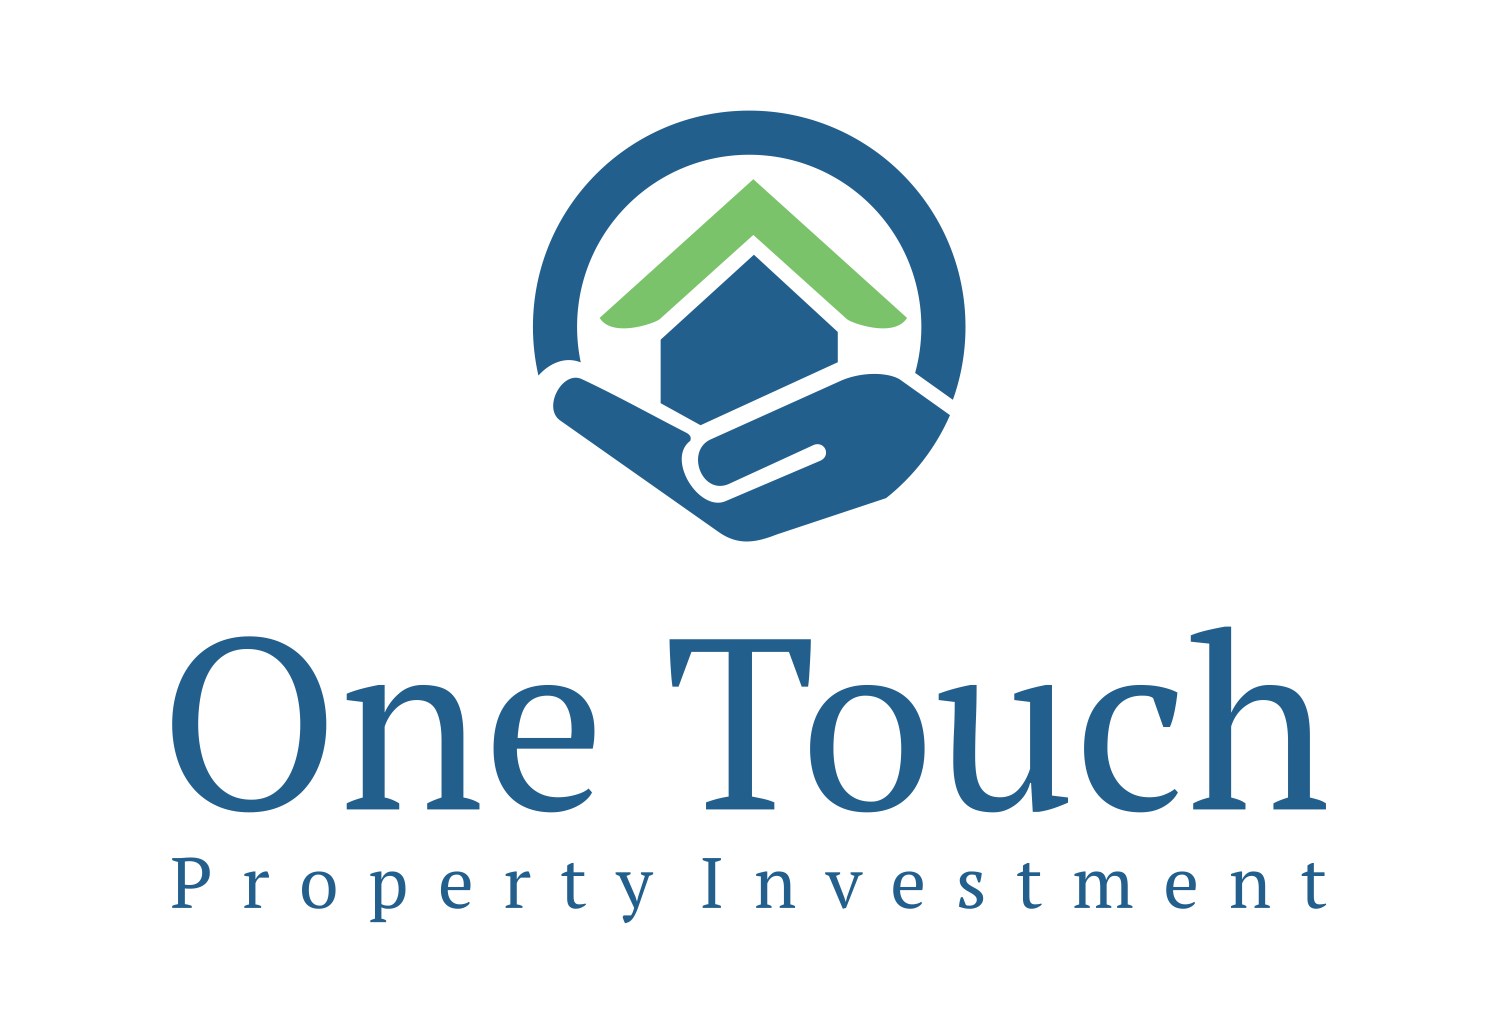 One Touch Property Investment Logo